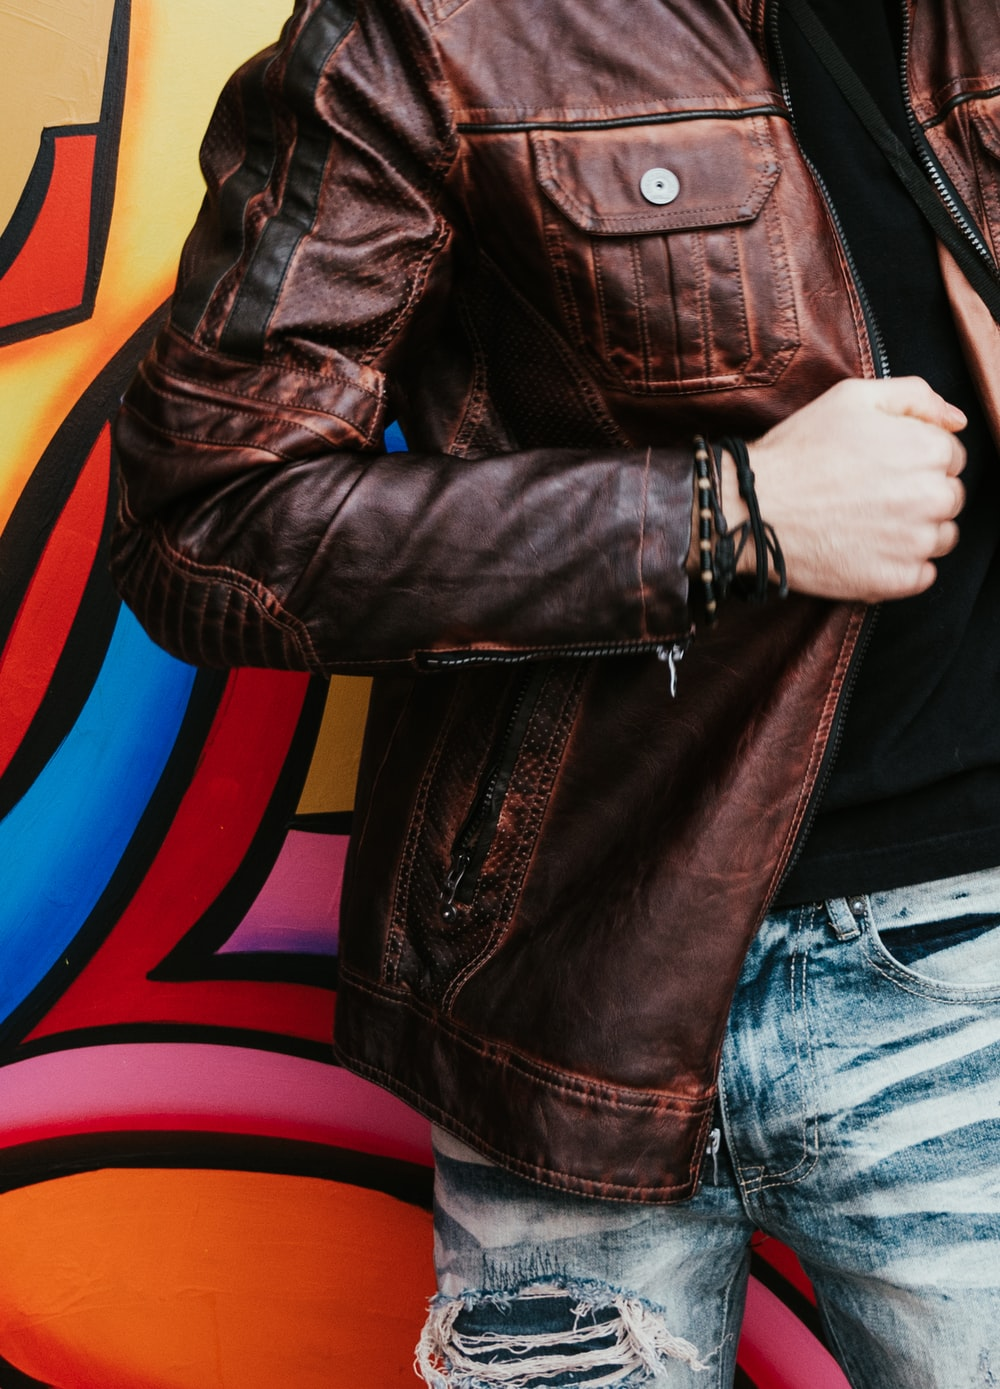 person in brown leather zip-up jacket